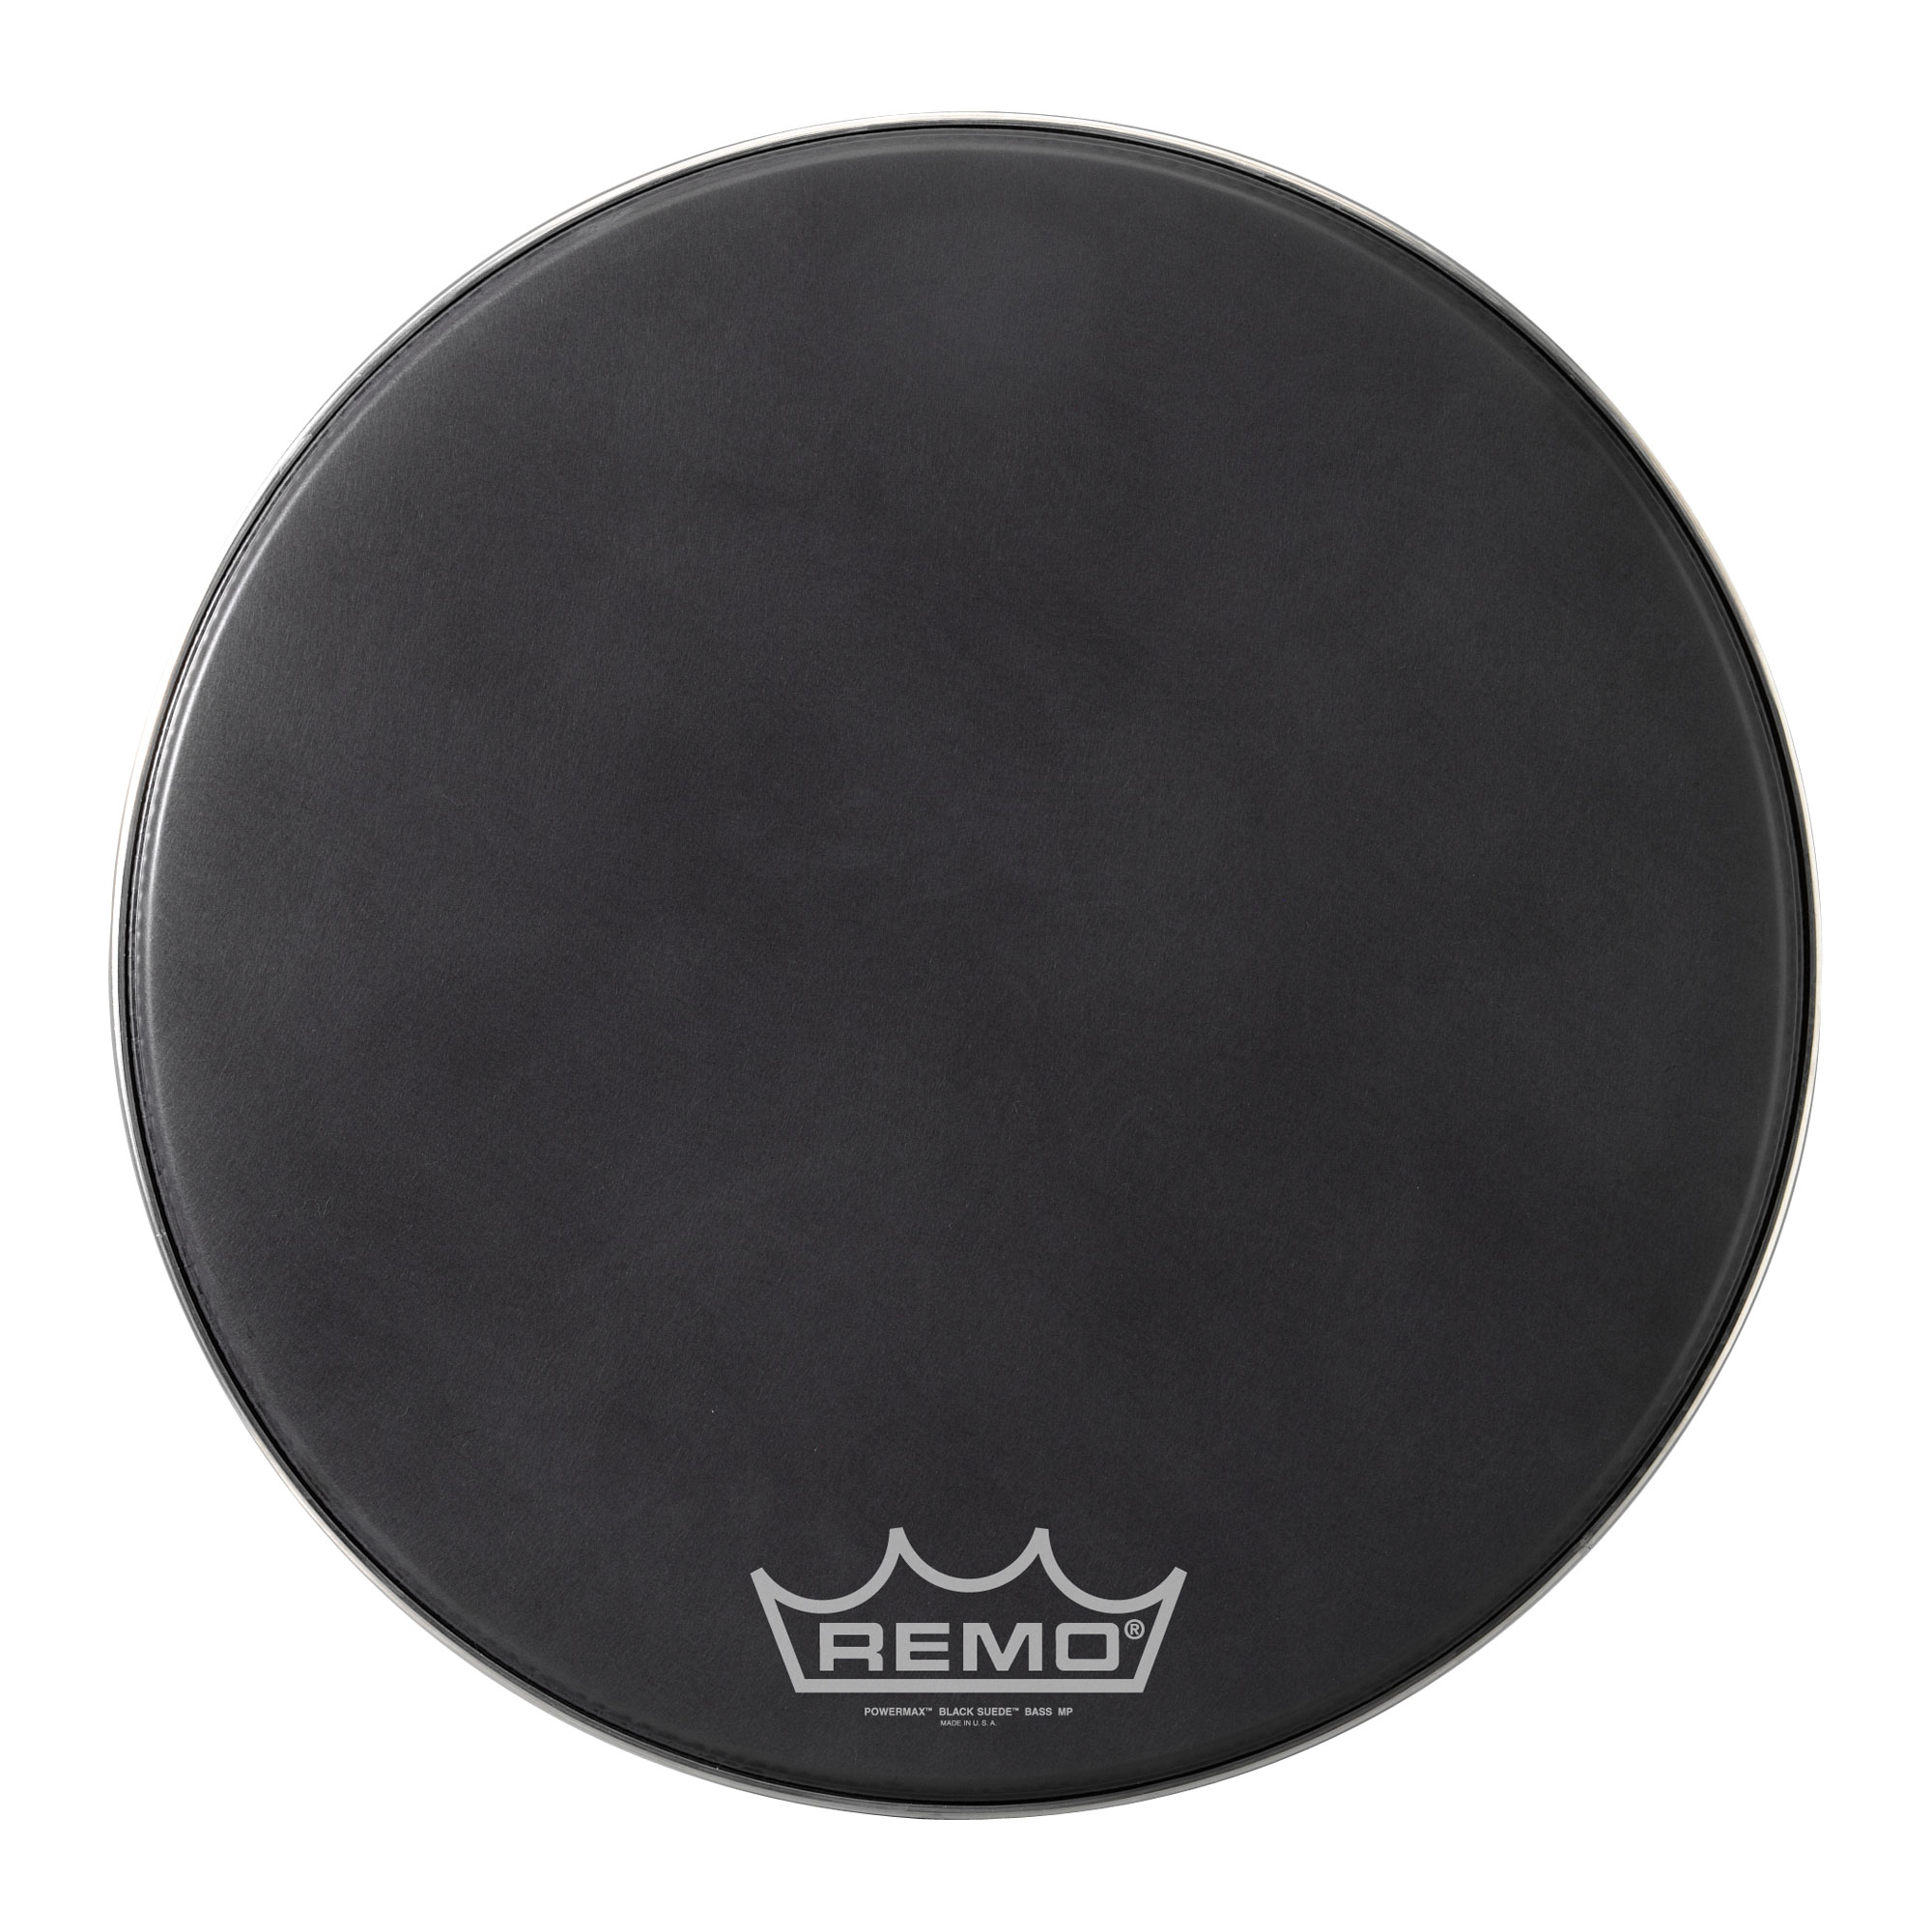 "Remo 20"" Powermax Black Suede Crimplock Marching Bass Drum Head"